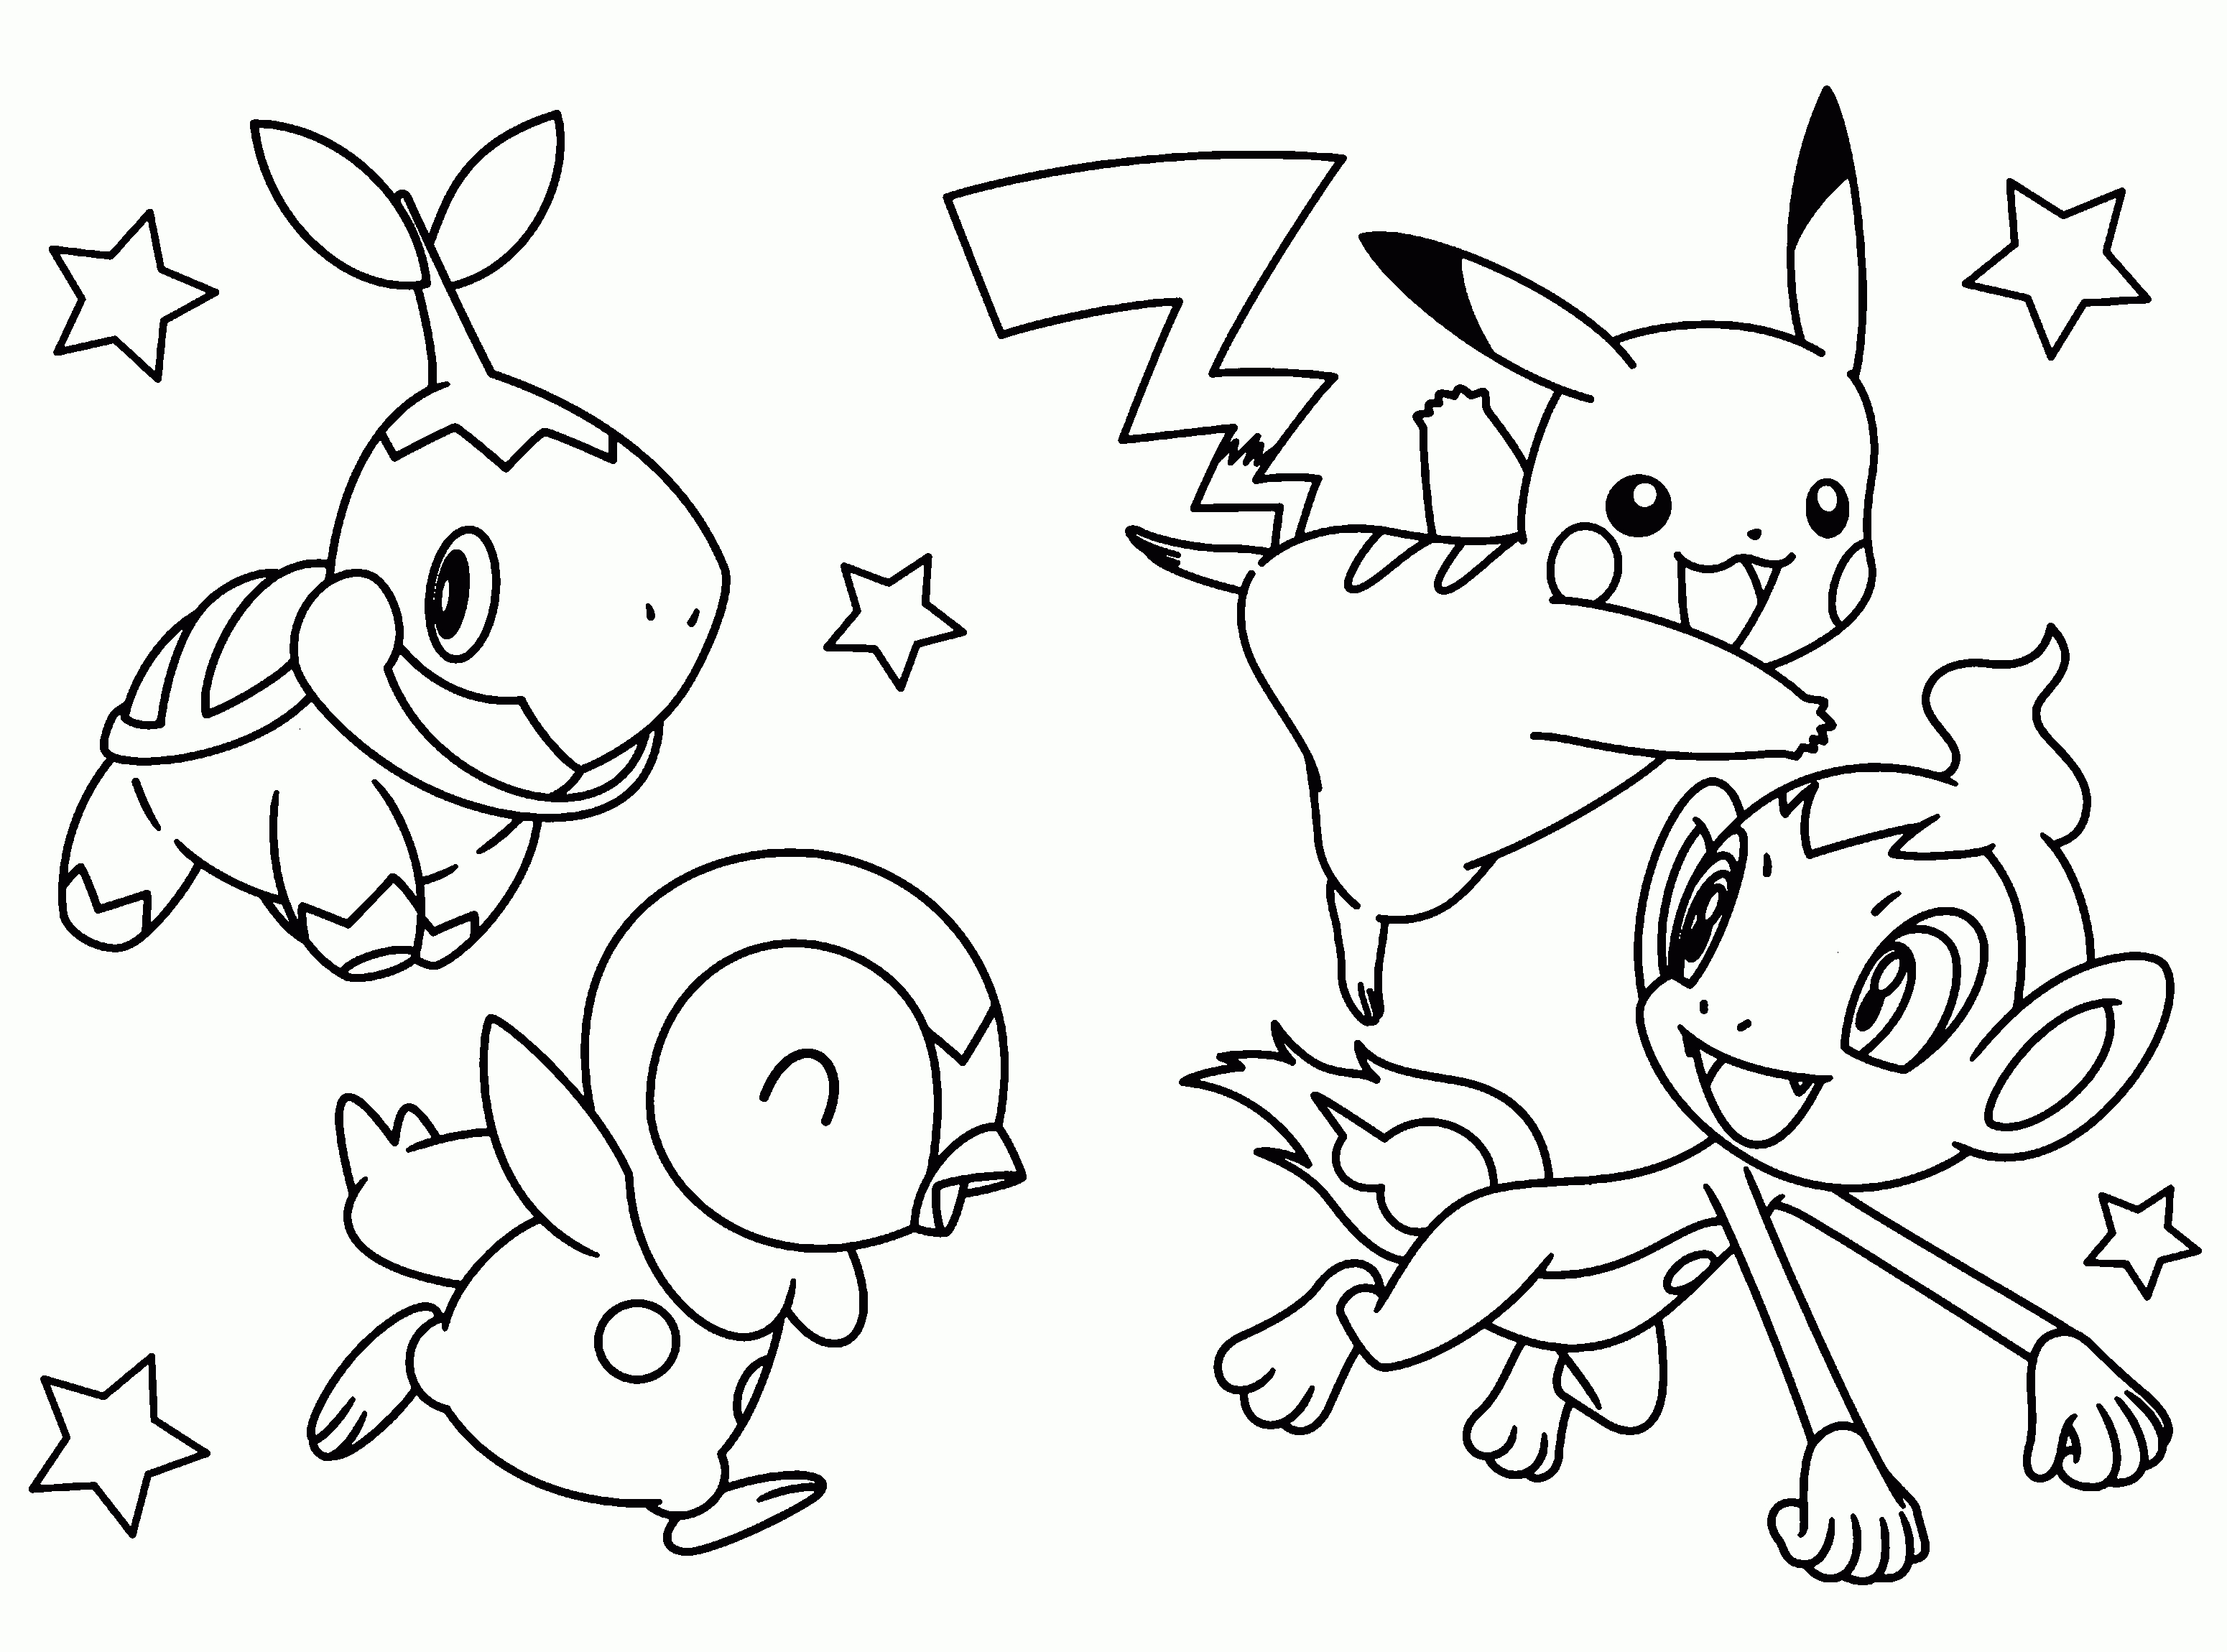 Coloriages A Imprimer Pokemon Numero Ad12c970